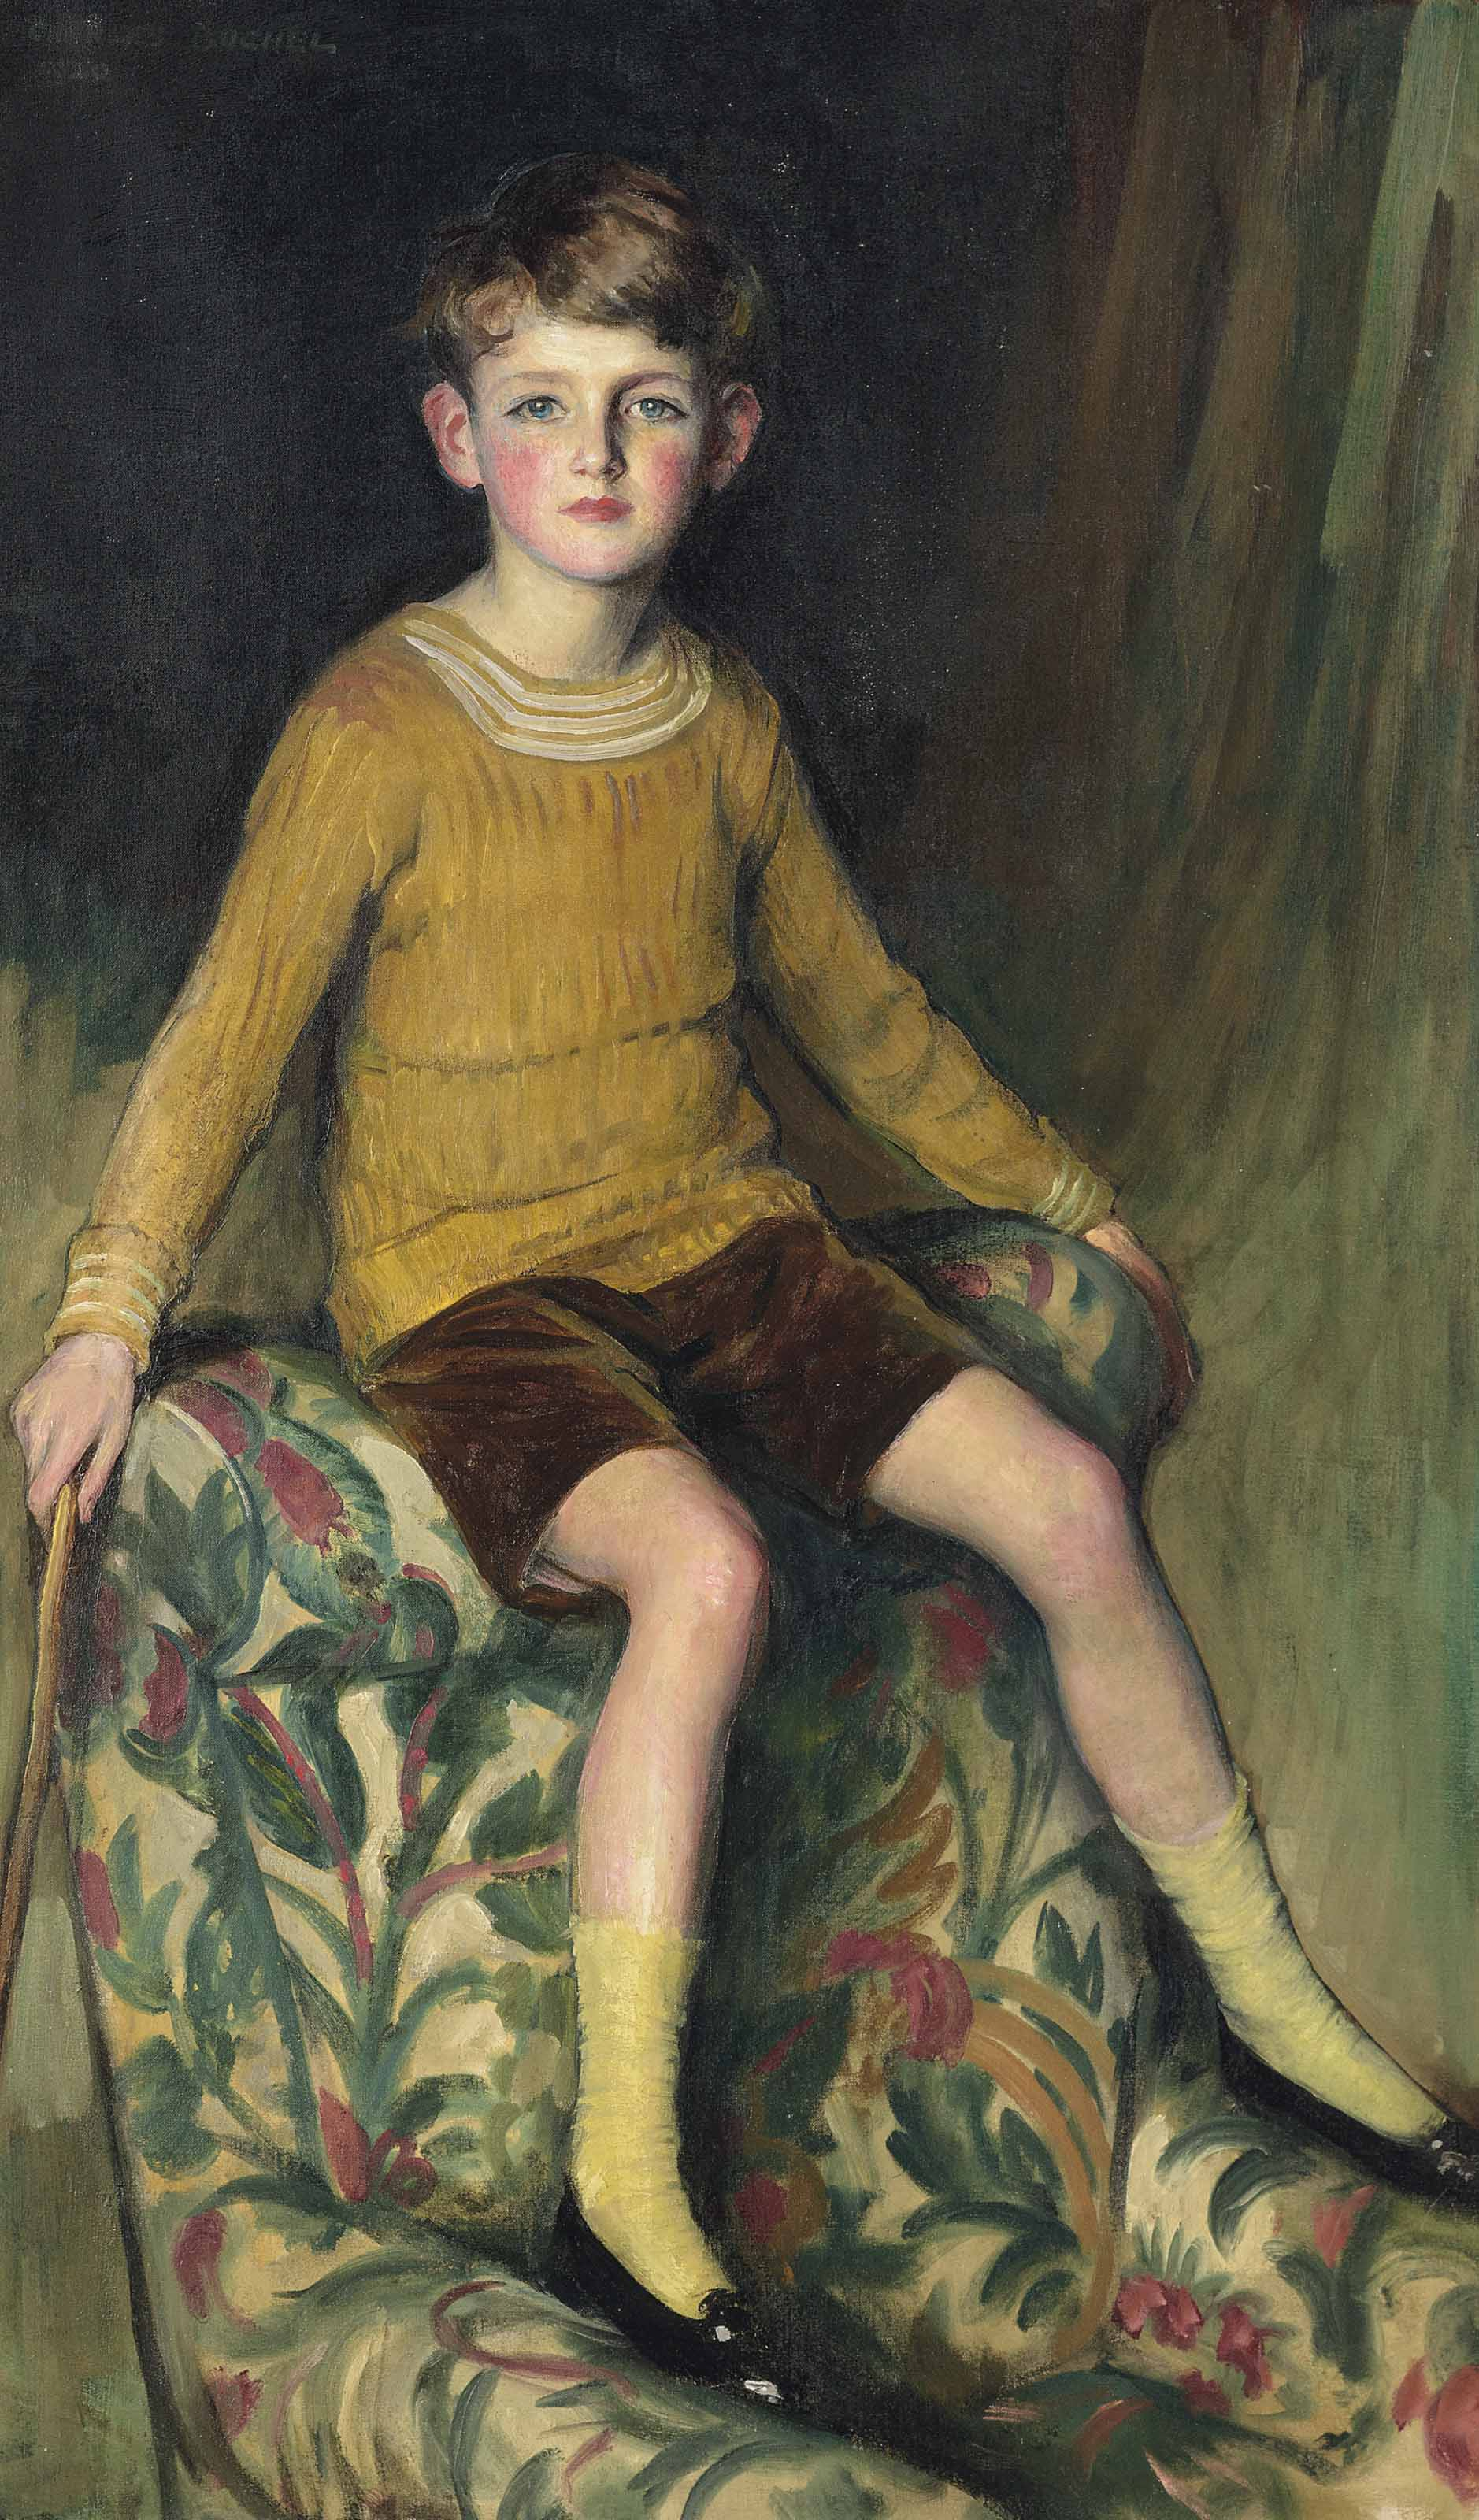 Portrait of the artist's son, Philip Buchel